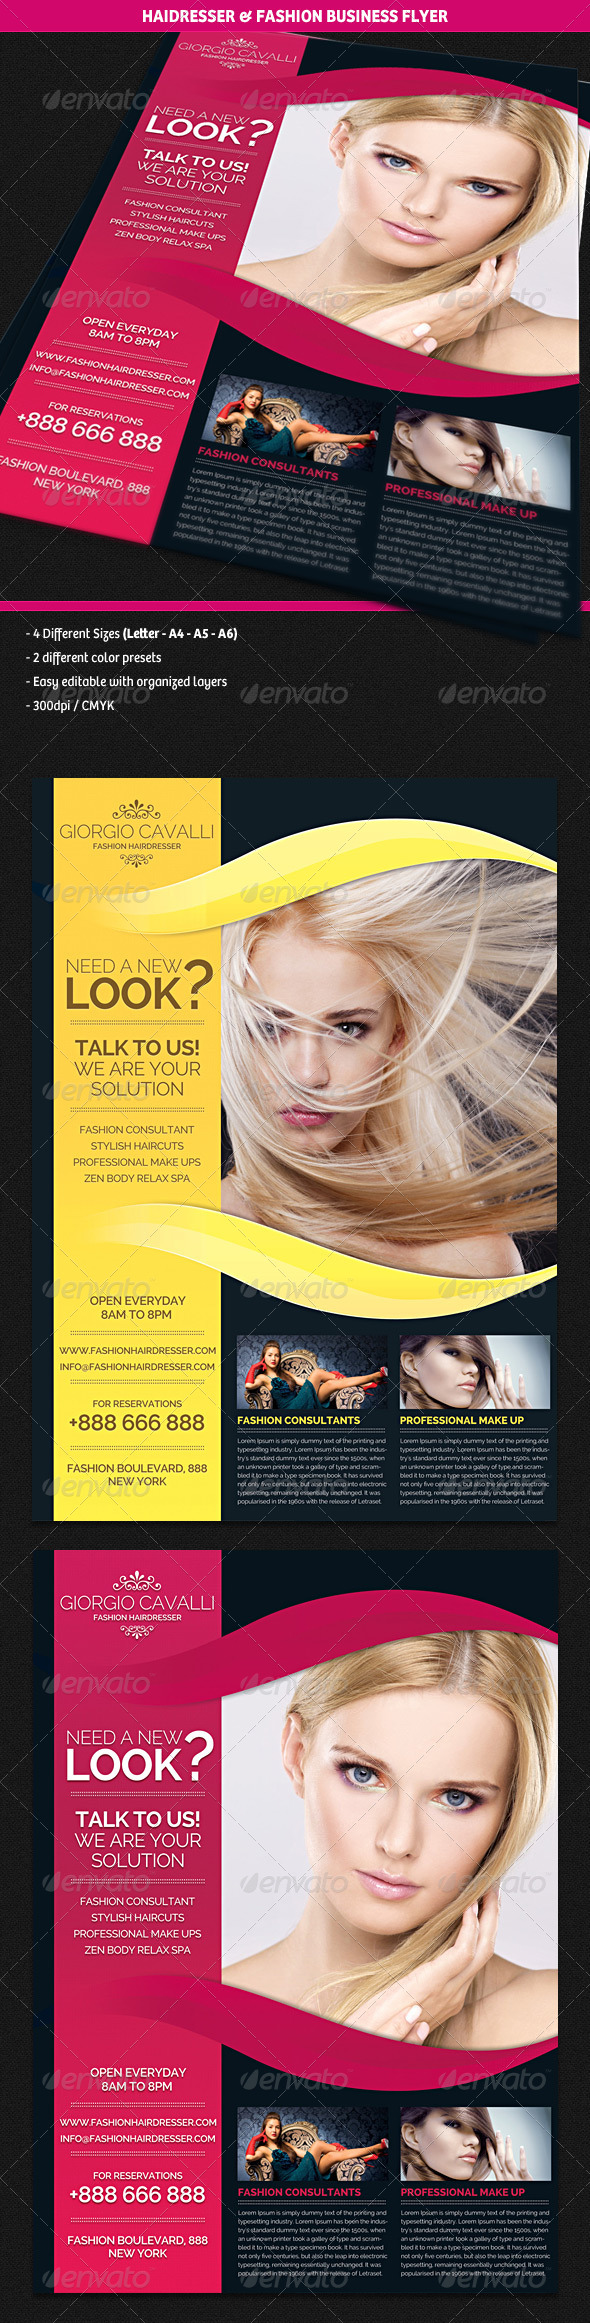 GraphicRiver Hair Dresser Salon & Fashion Business Flyer 4492406